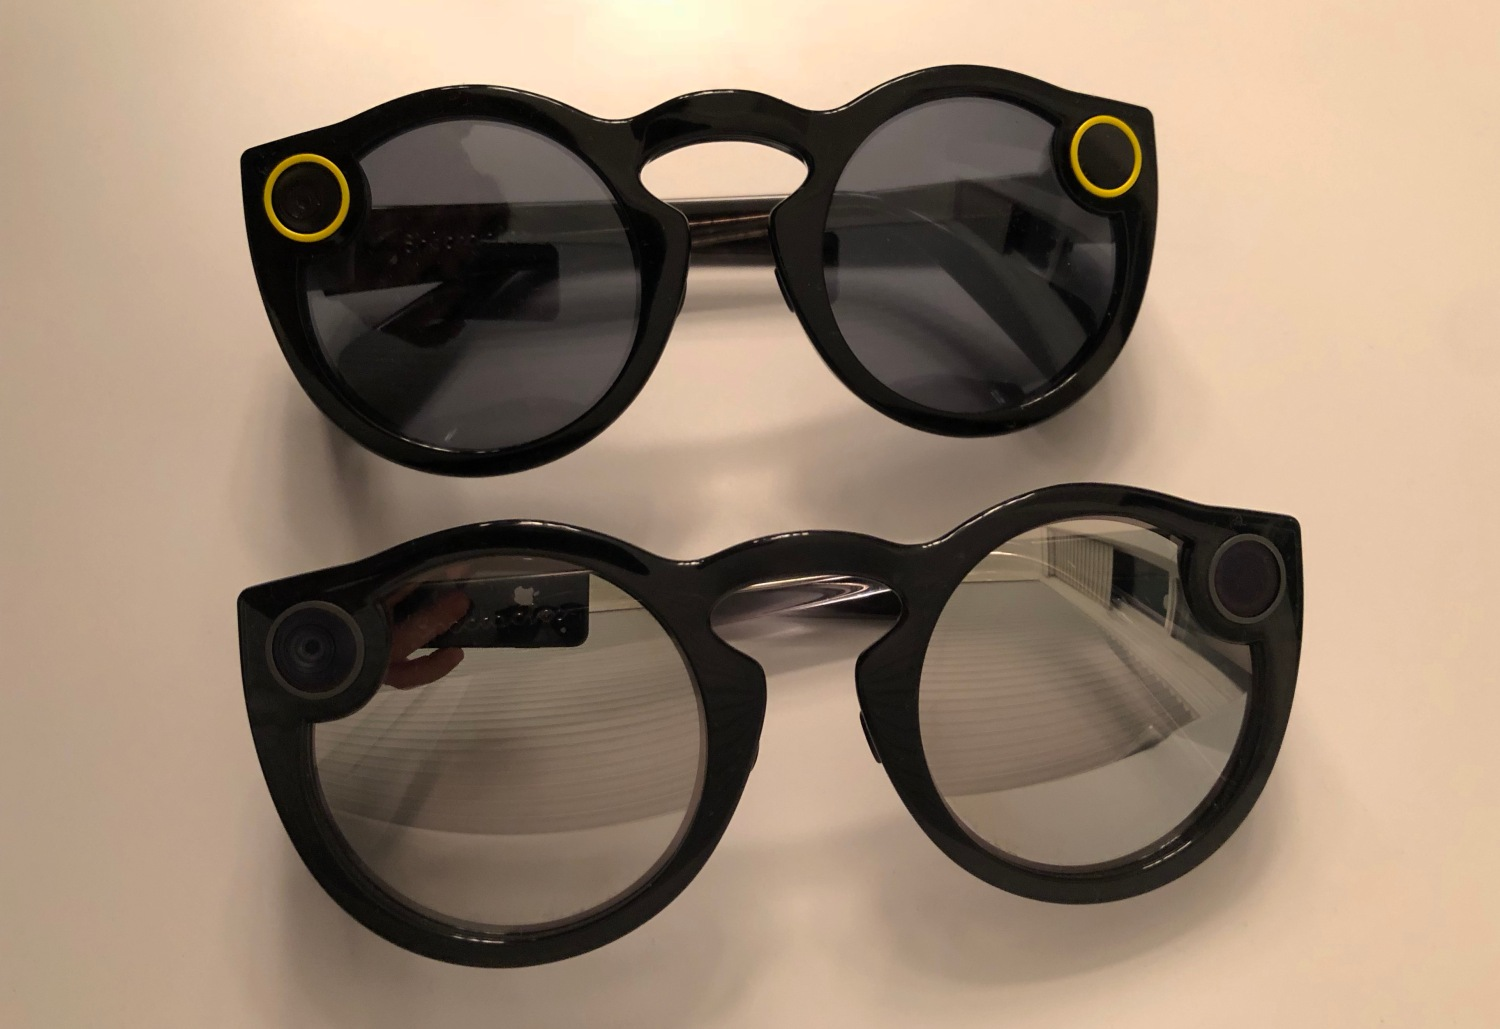 7722a262dfa7 Snaapchat Spectacles Front View V1 vs V2